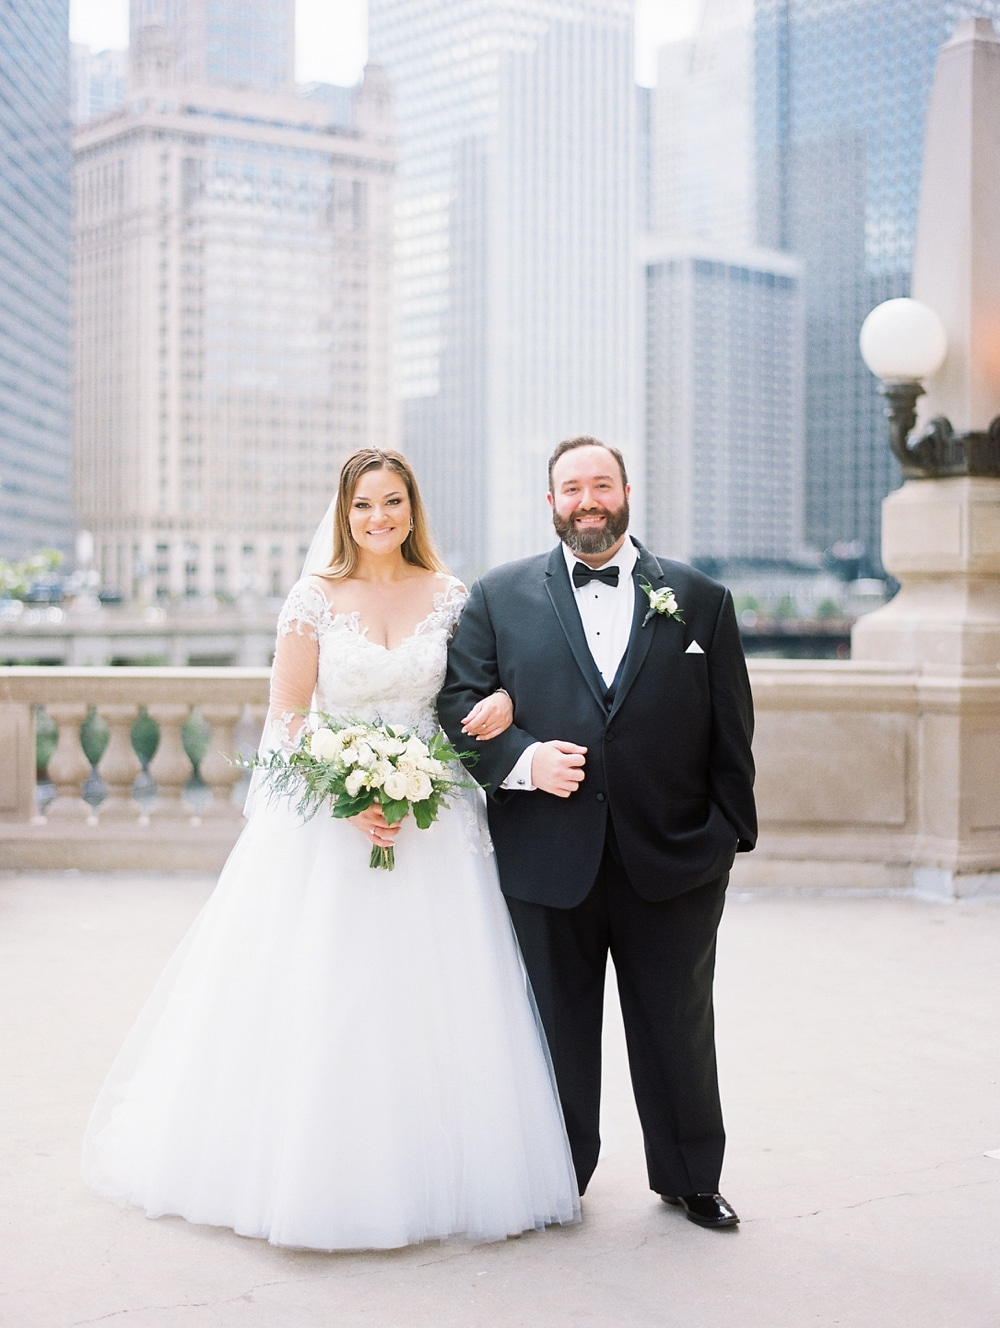 Kristin-La-Voie-Photography-field-museum-chicago-wedding-photos-147